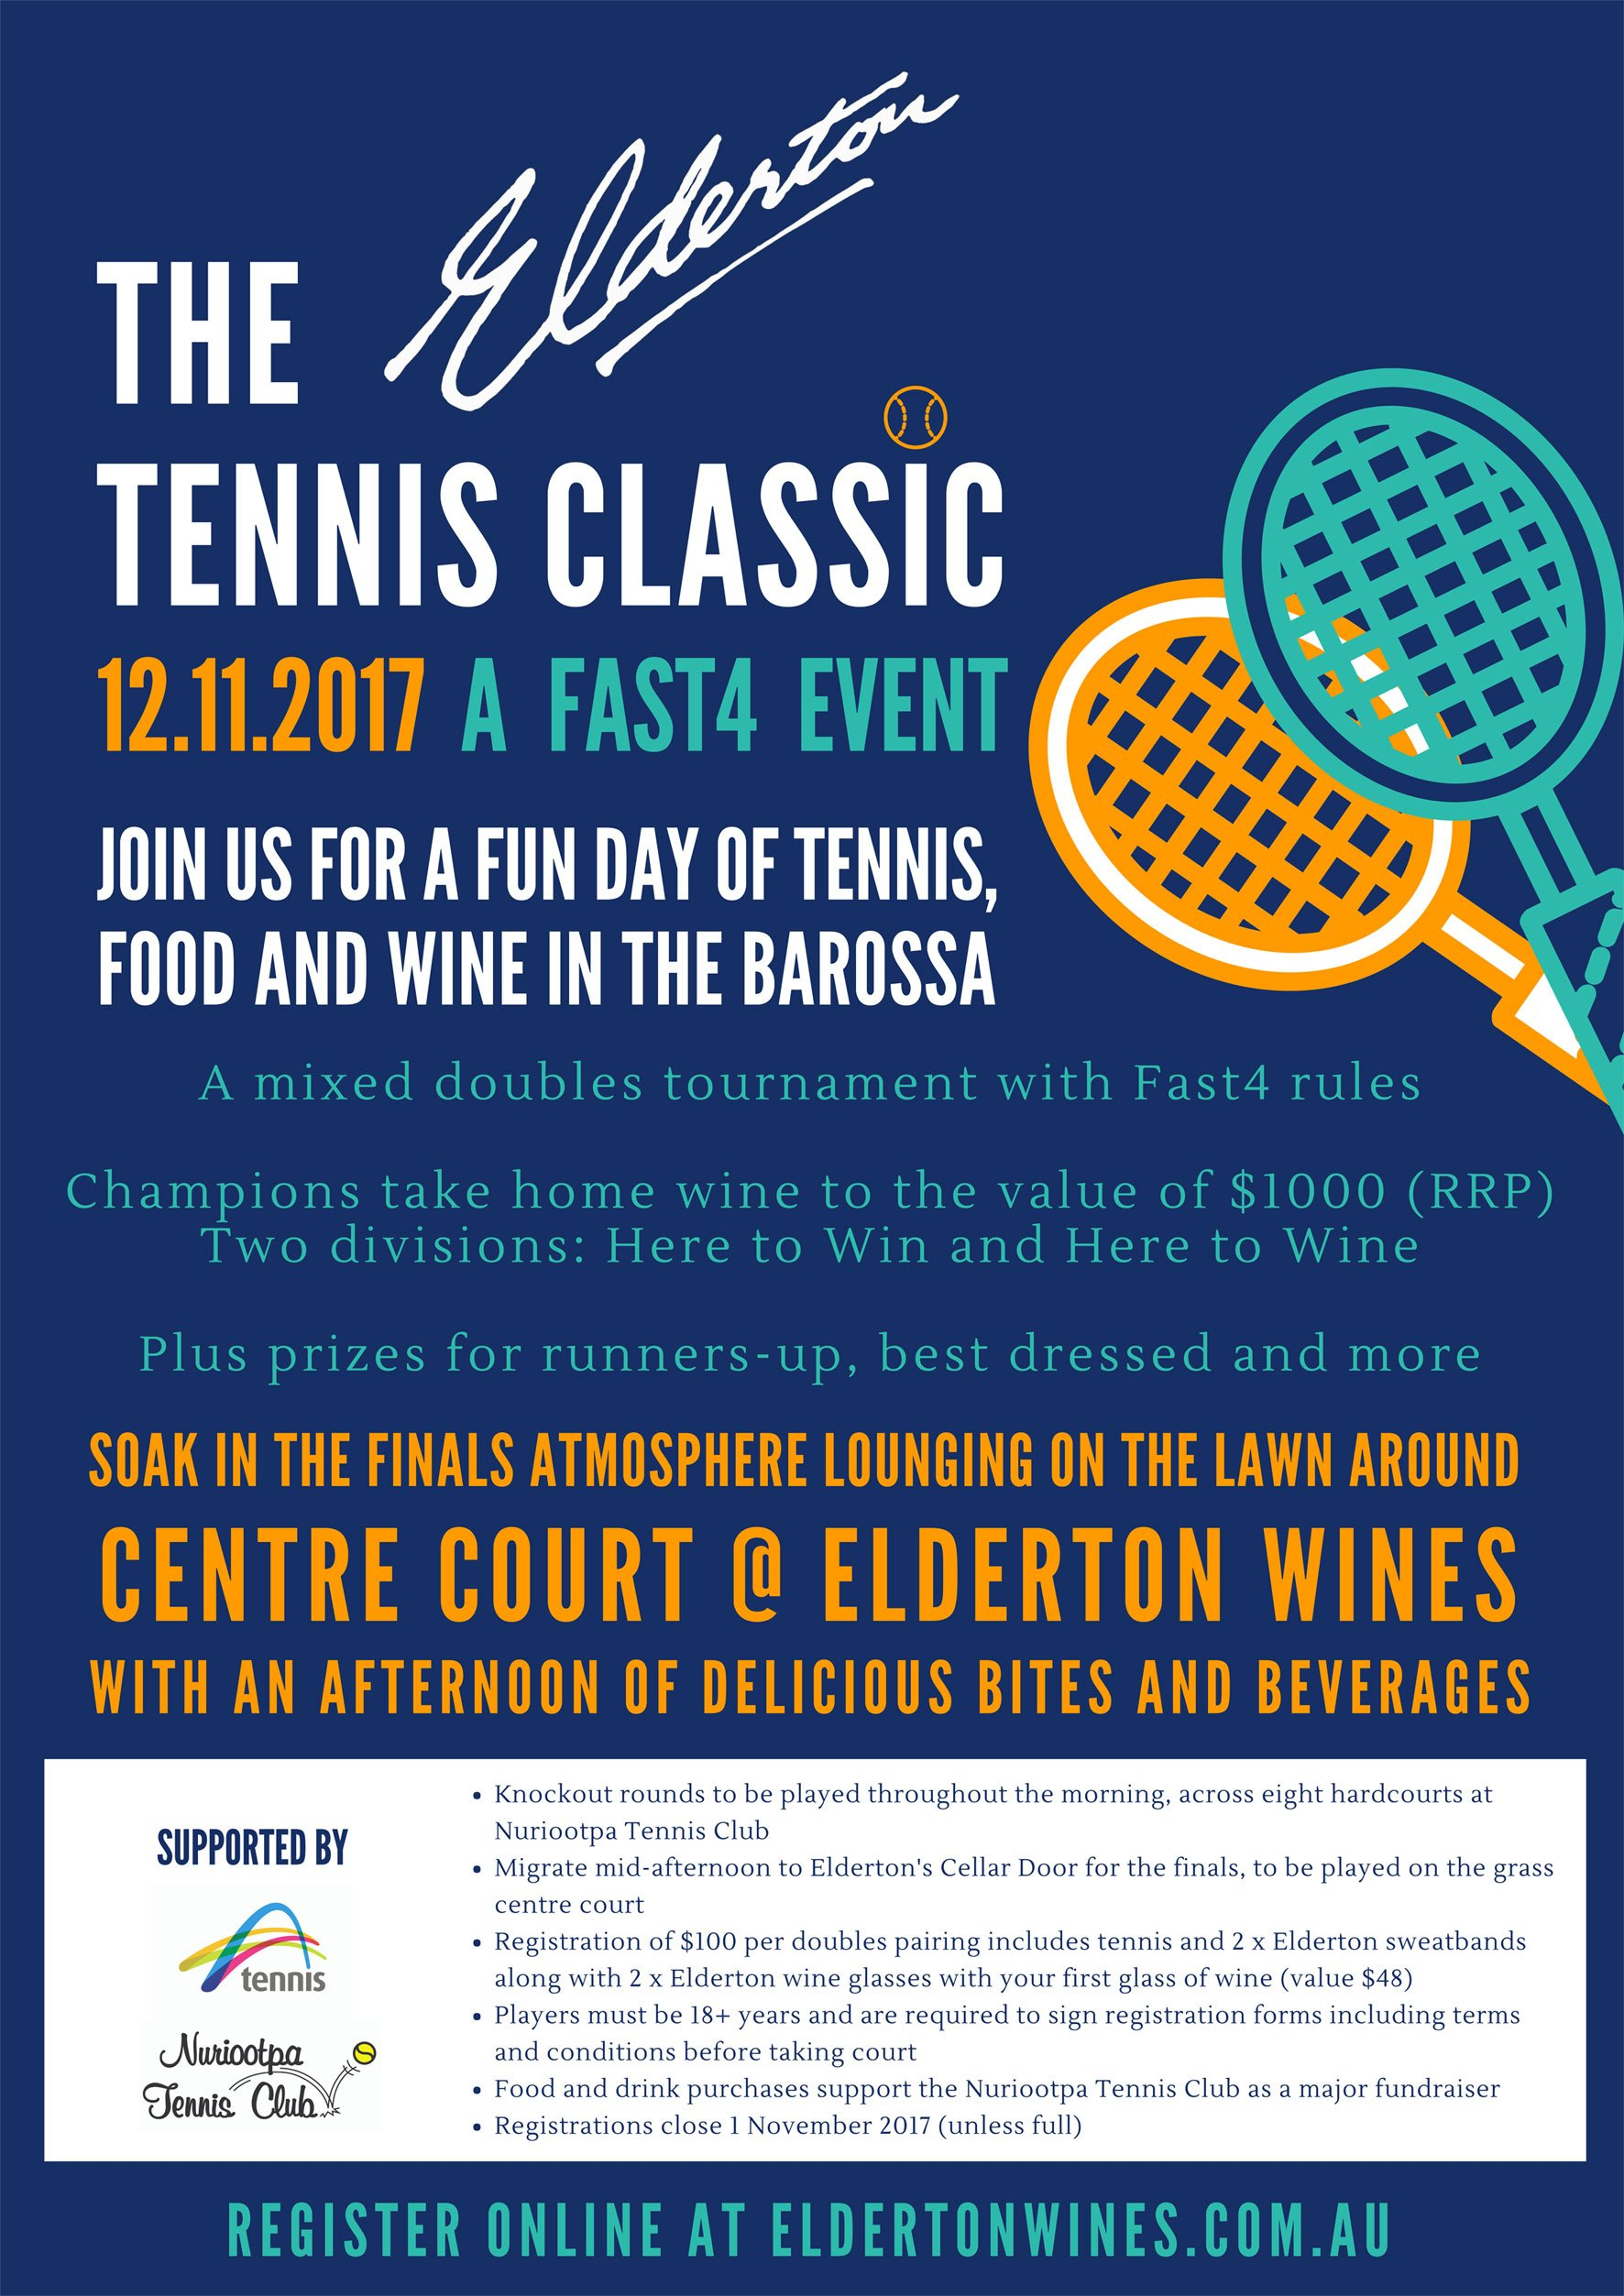 Elderton-Tennis-Classic-November-2017